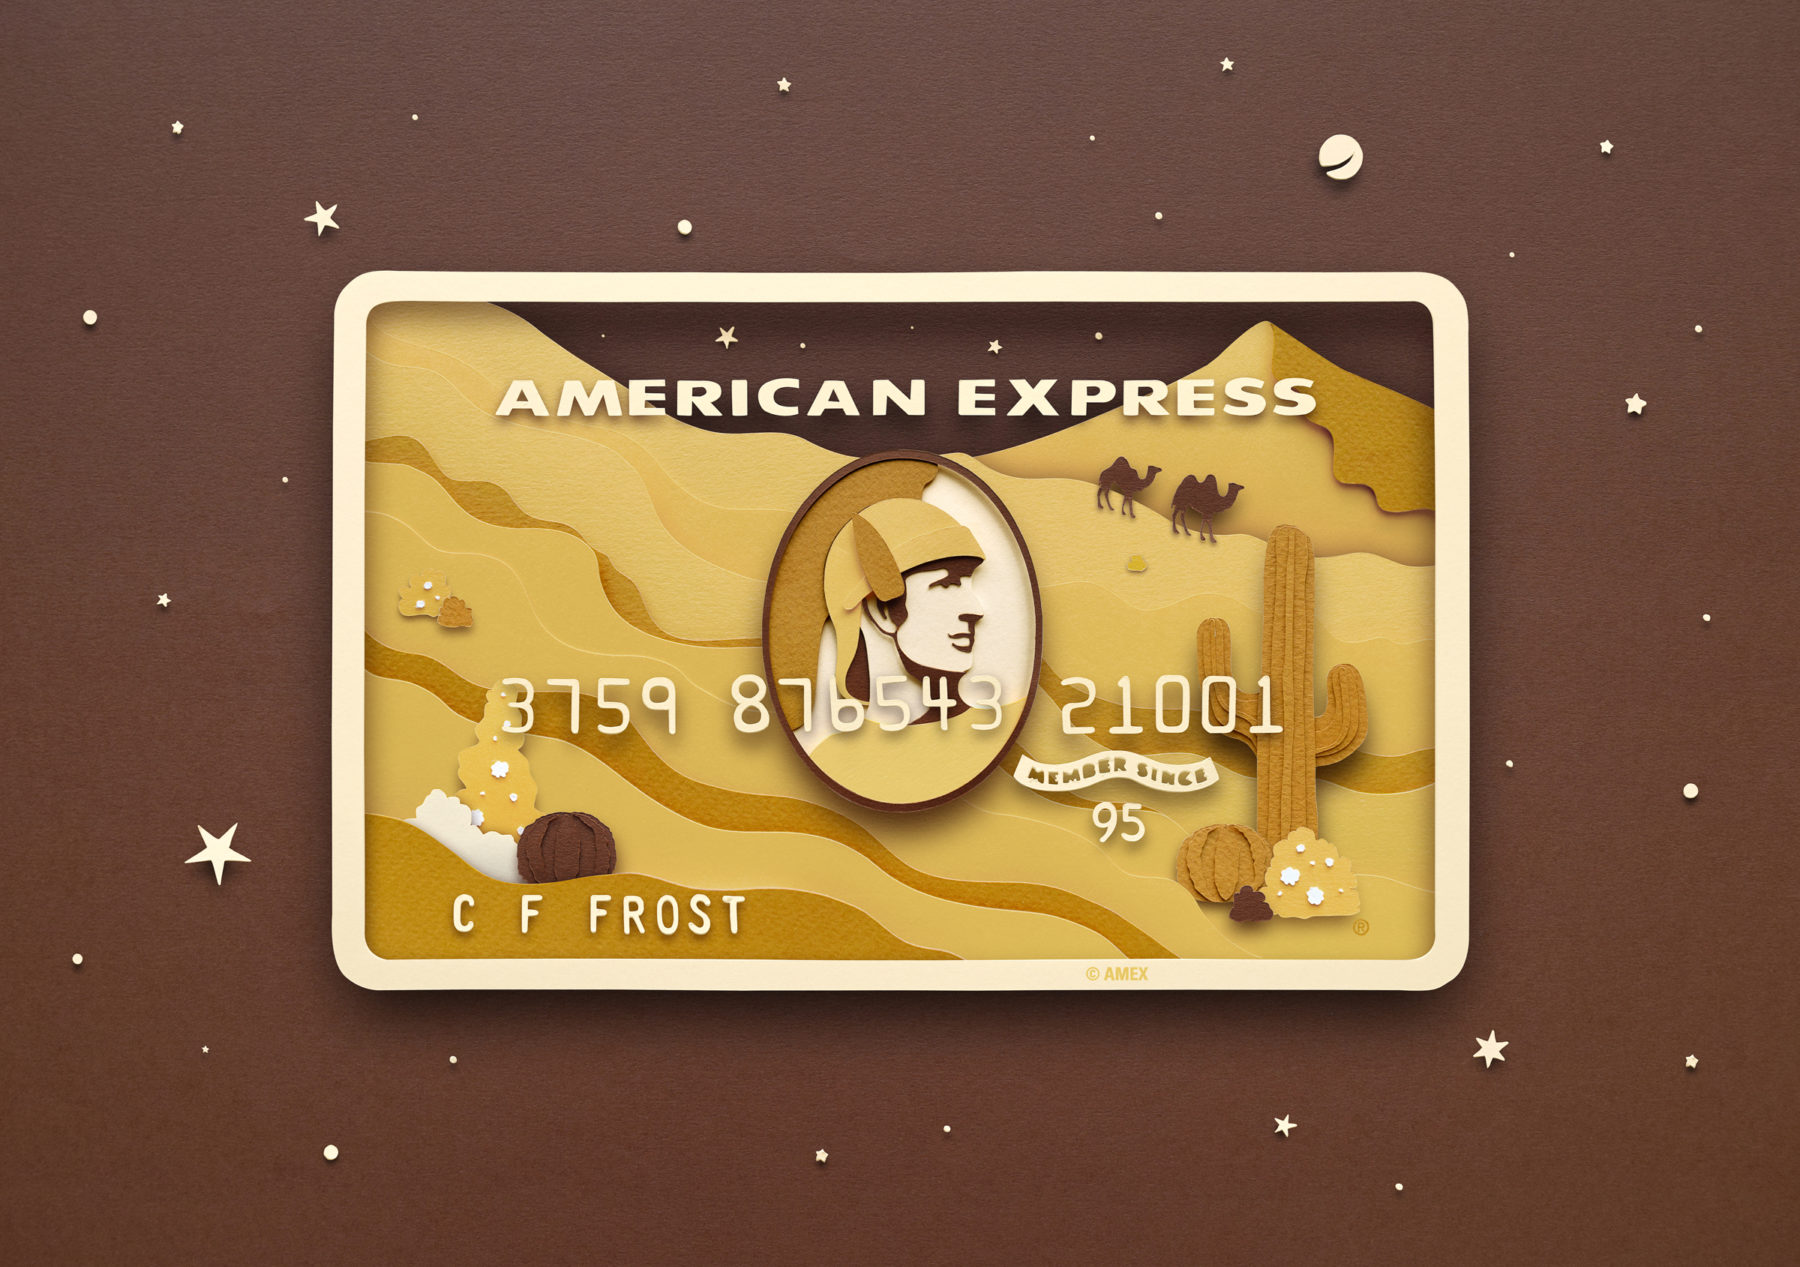 Paper Illustrations for American Express Card Series by Owen Gildersleeve - Gold